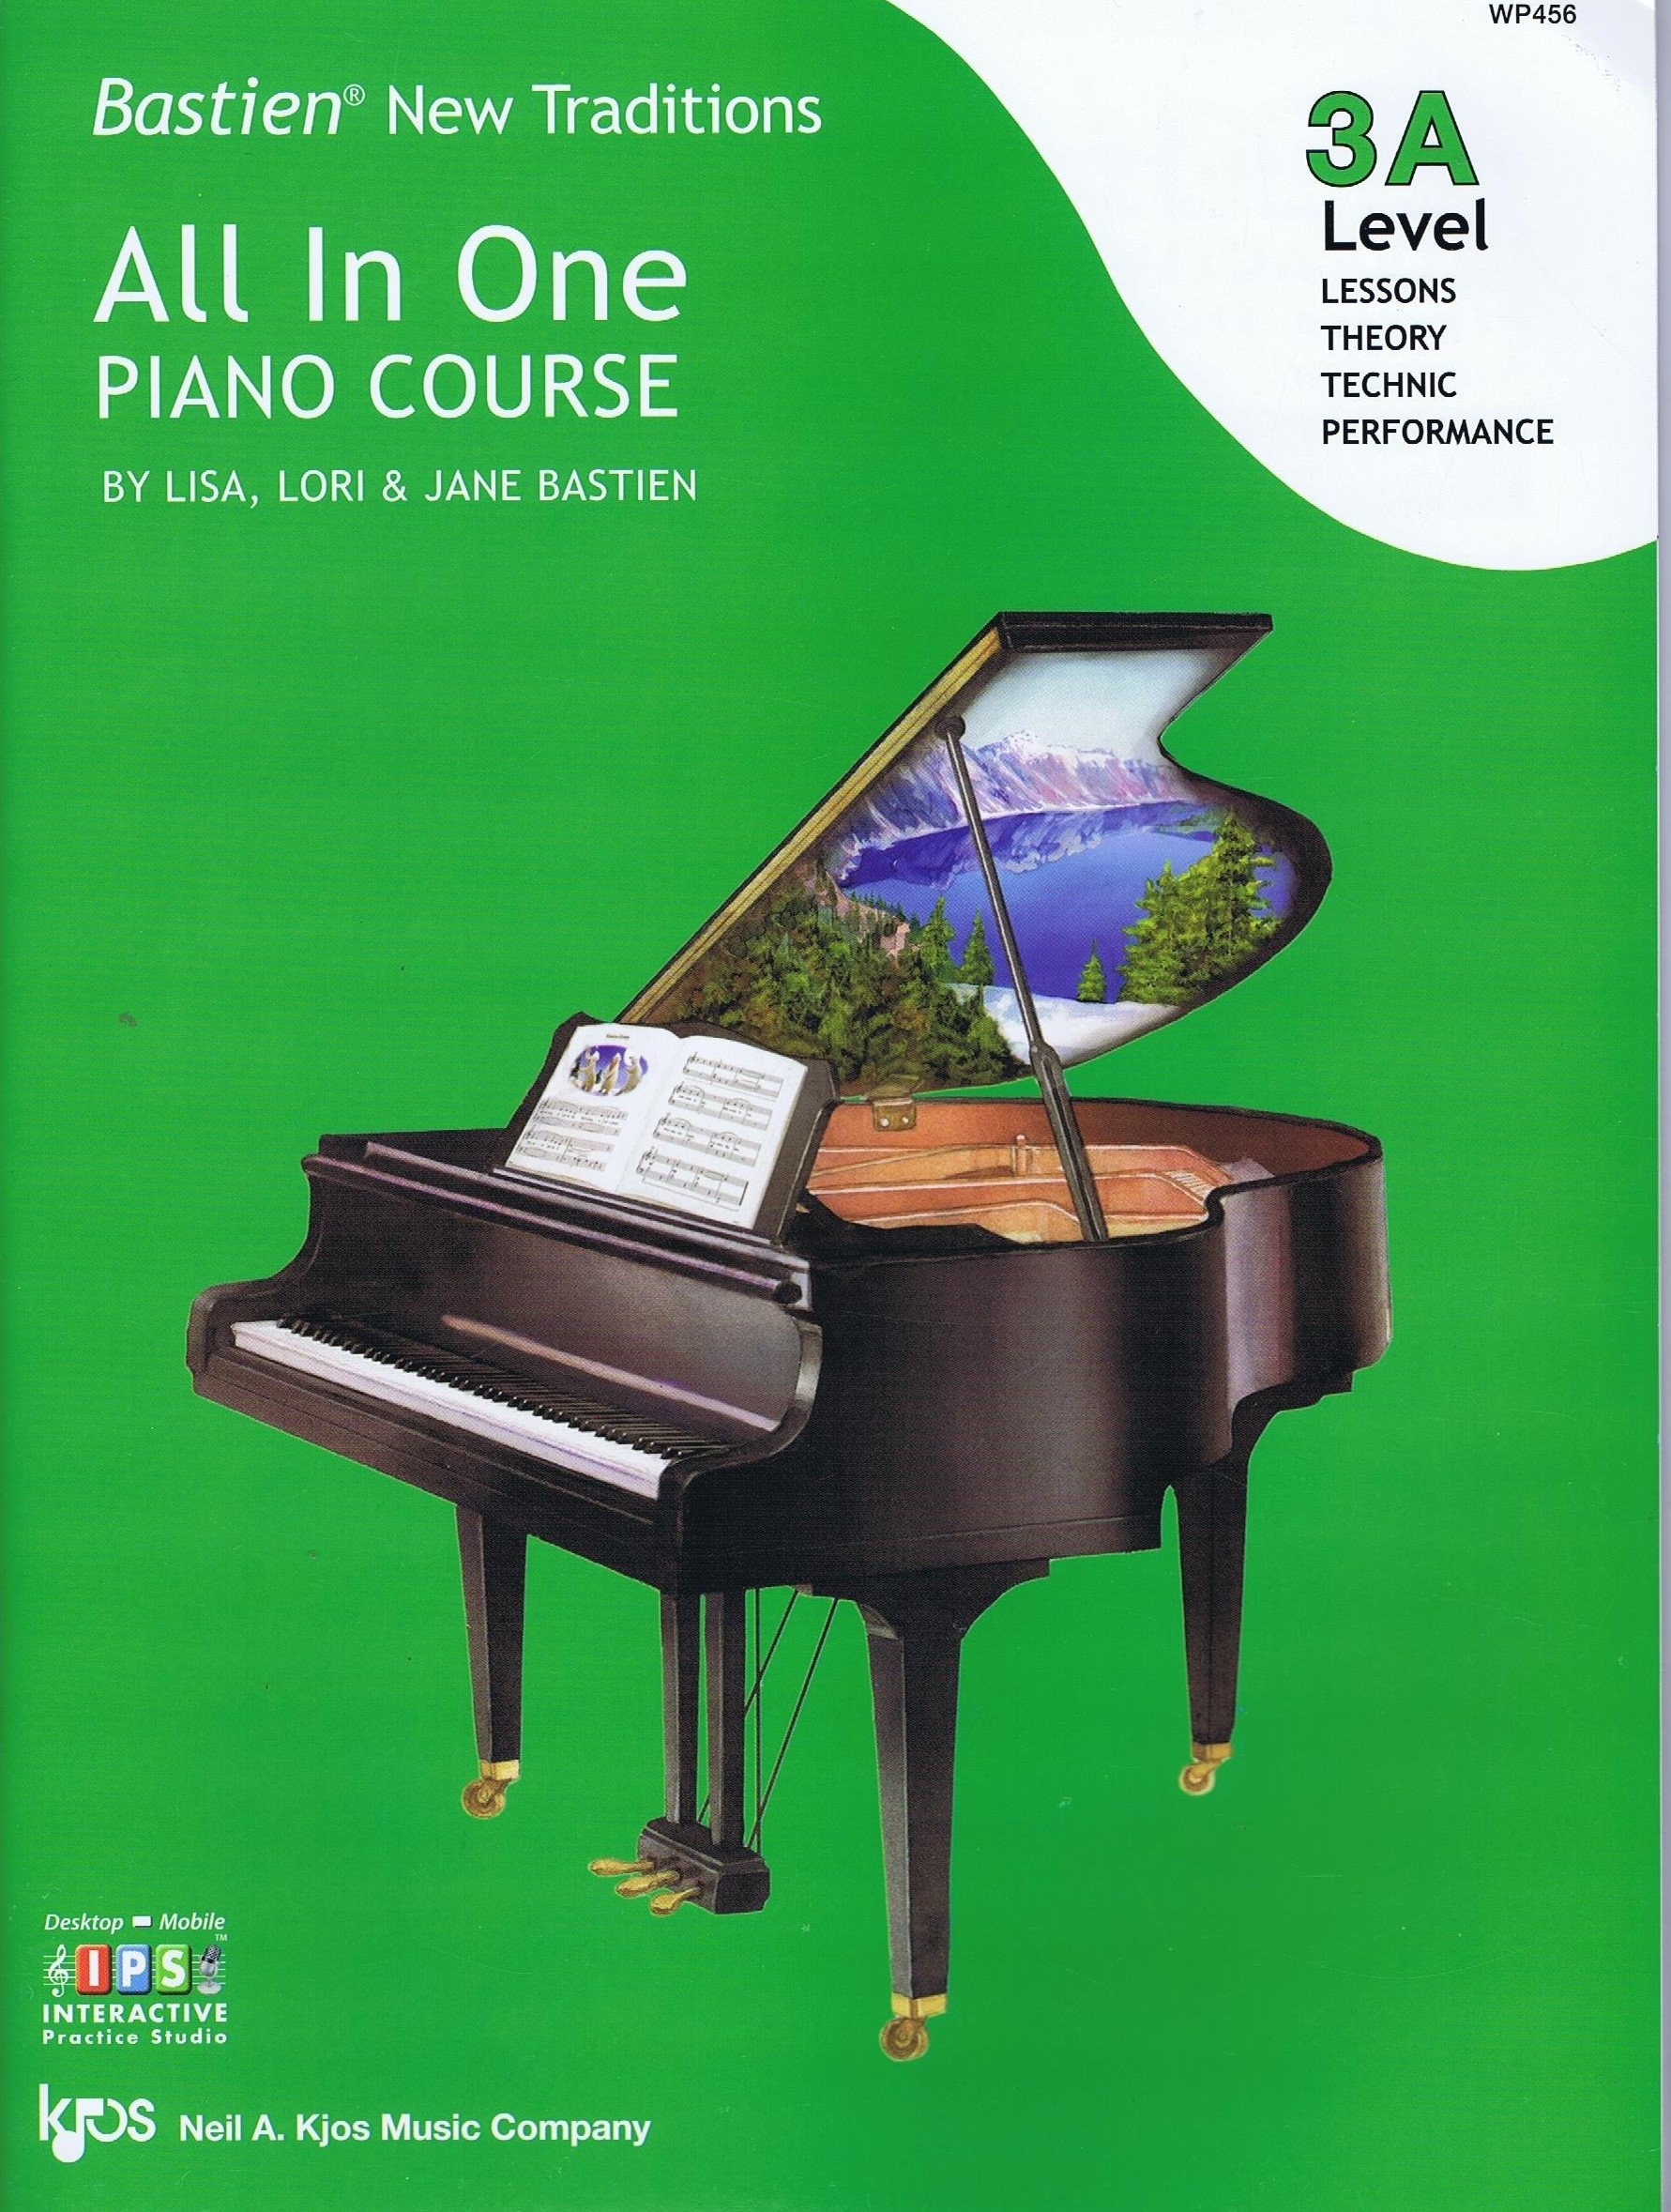 Download WP456 - Bastien New Traditions - All in One Piano Course - Level 3A ebook